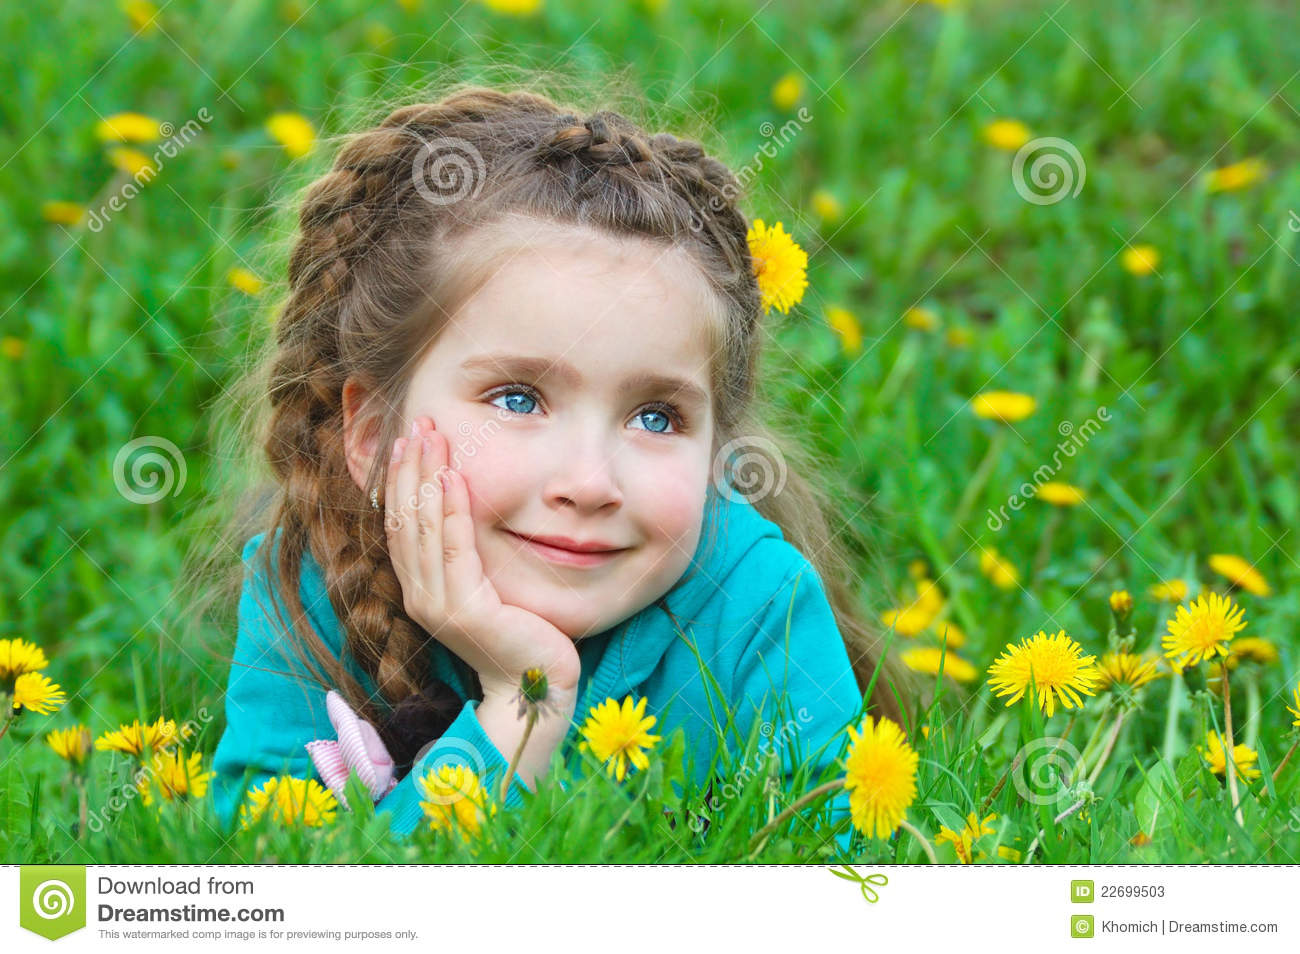 cute little girl dreaming on green grass stock image - image of